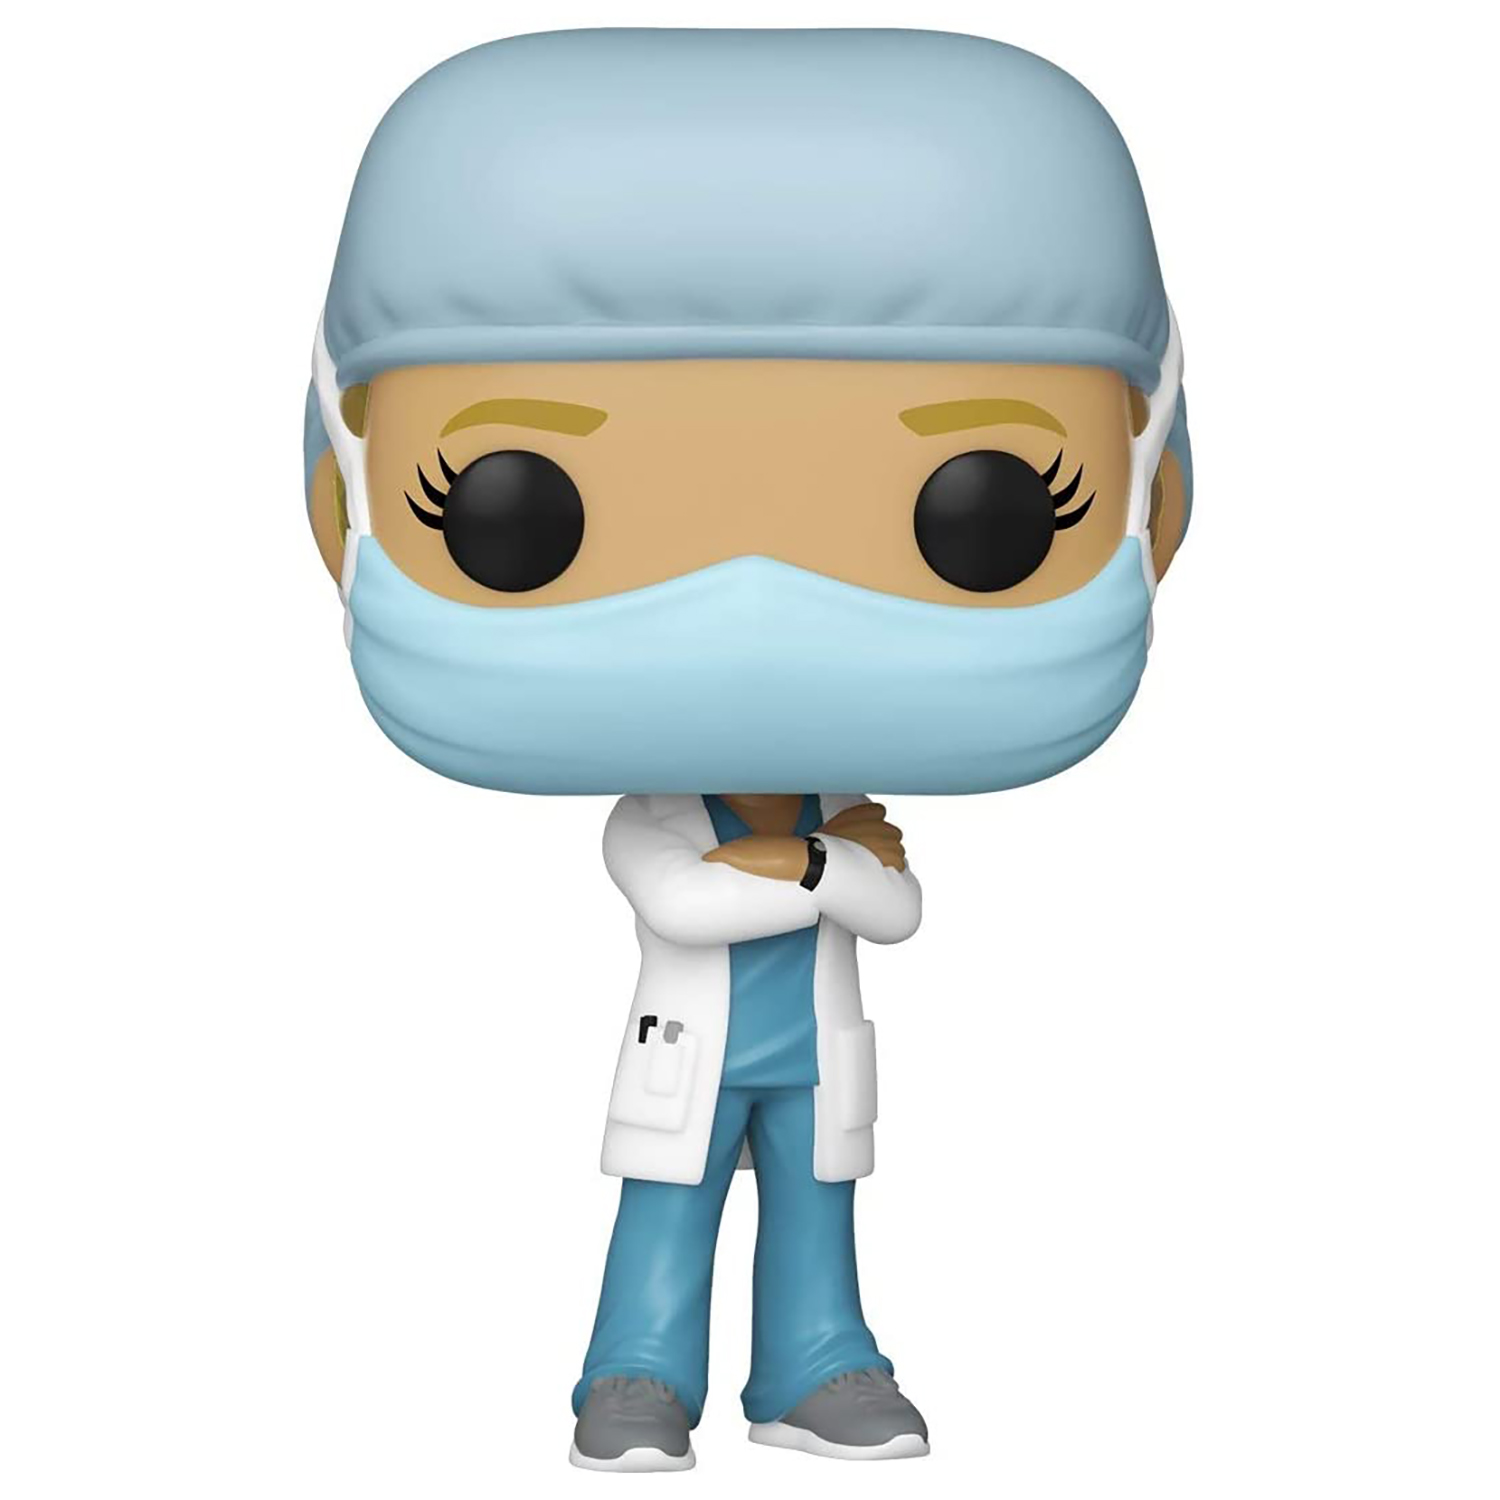 Фигурка Funko POP! Vinyl: Heroes: Front Line Worker: Female #1 54047